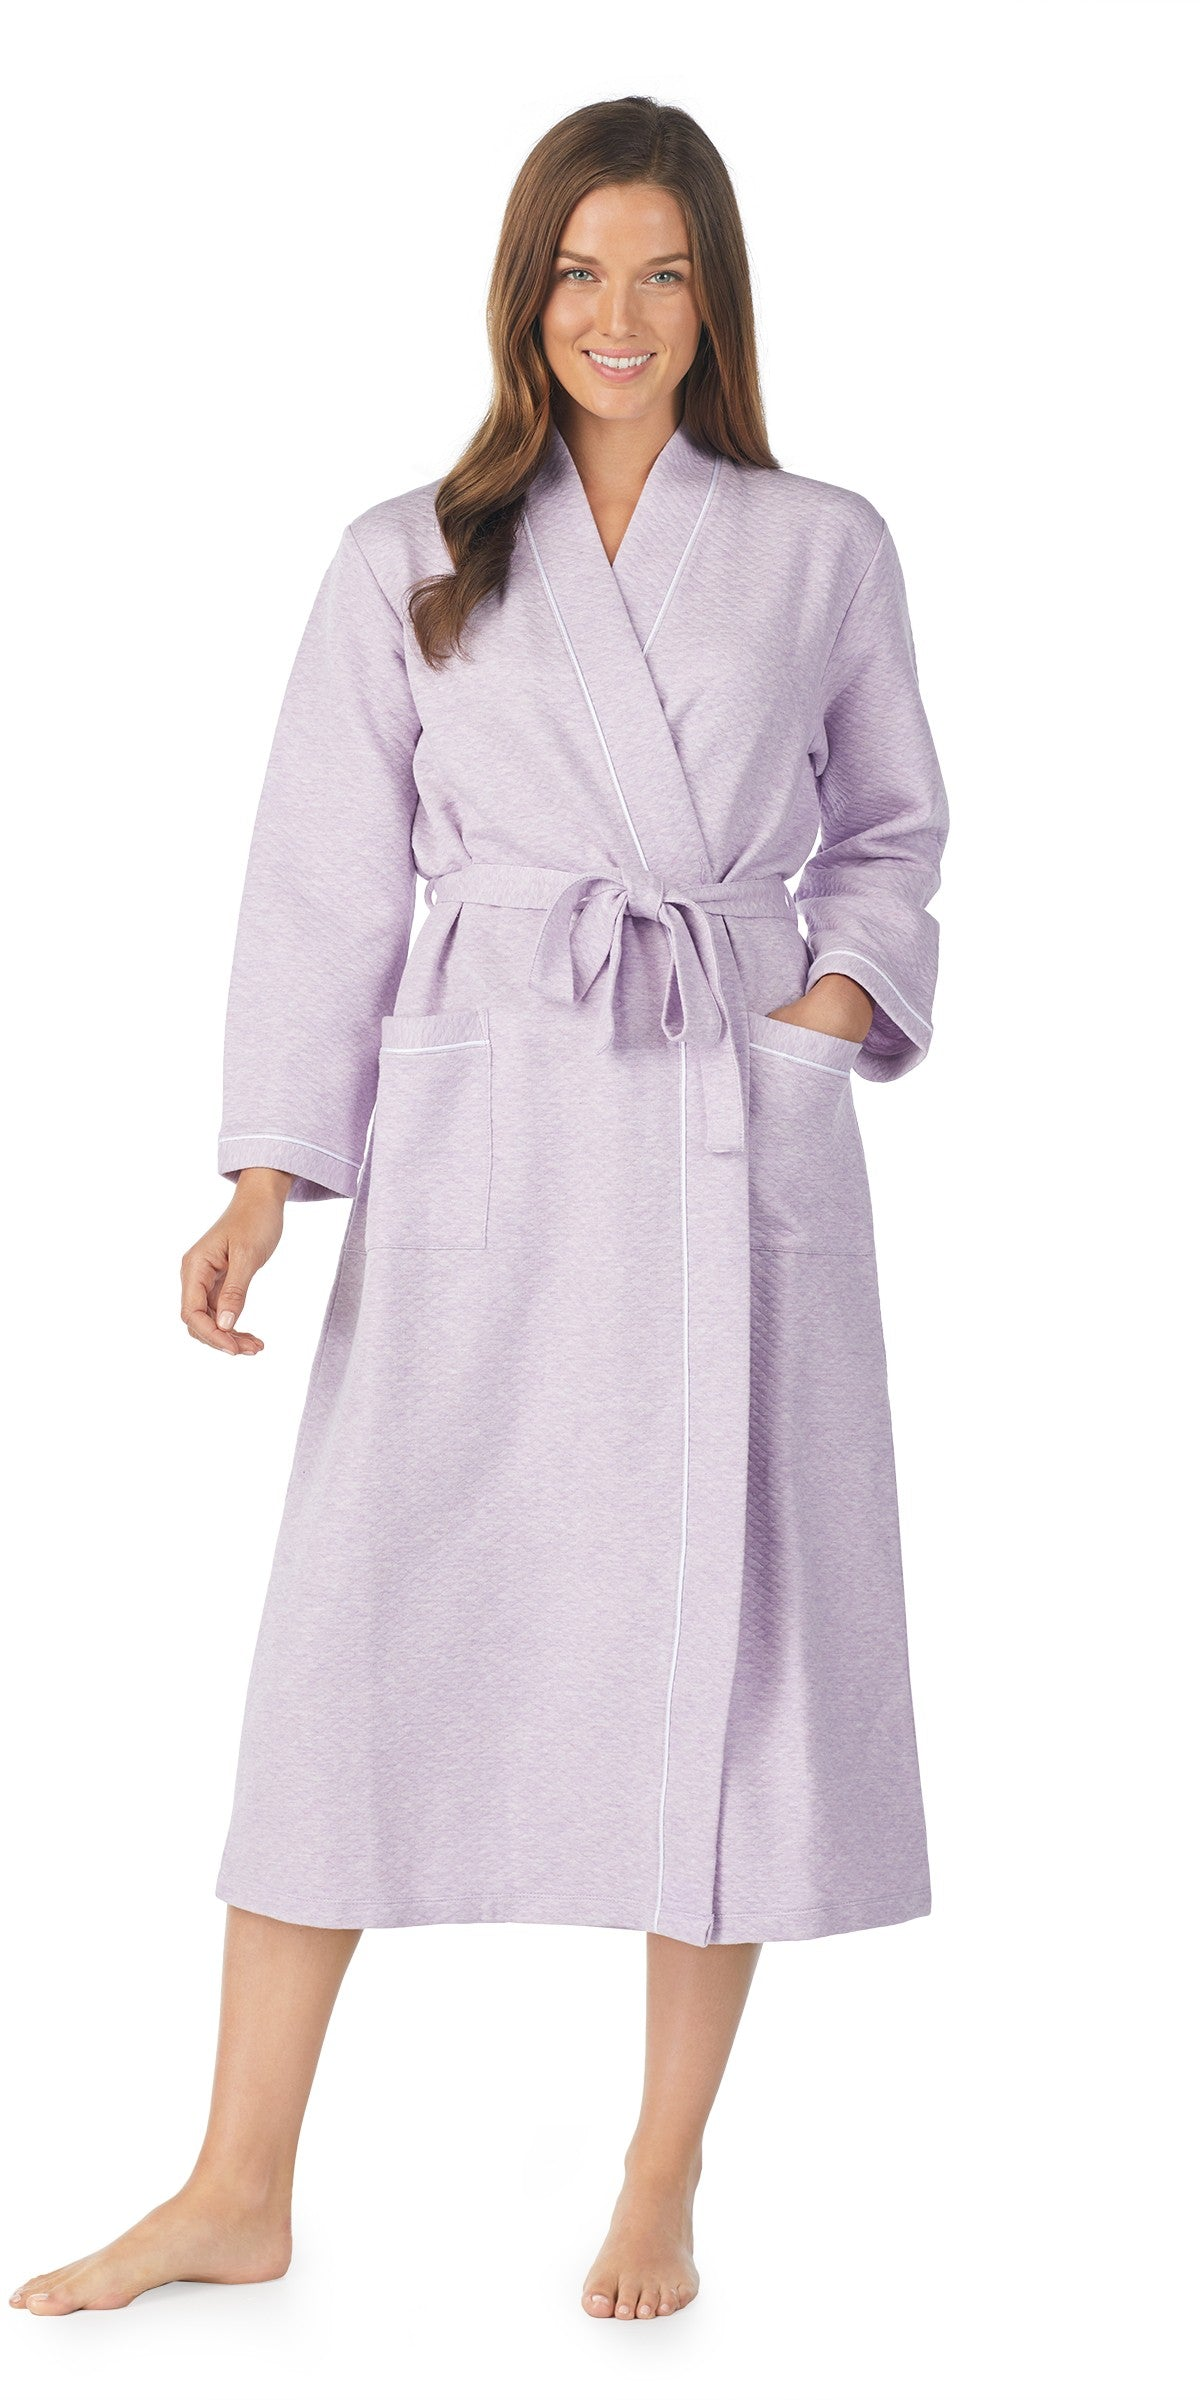 HEATHER PURPLE DIAMOND QUILT LONG WRAP ROBE